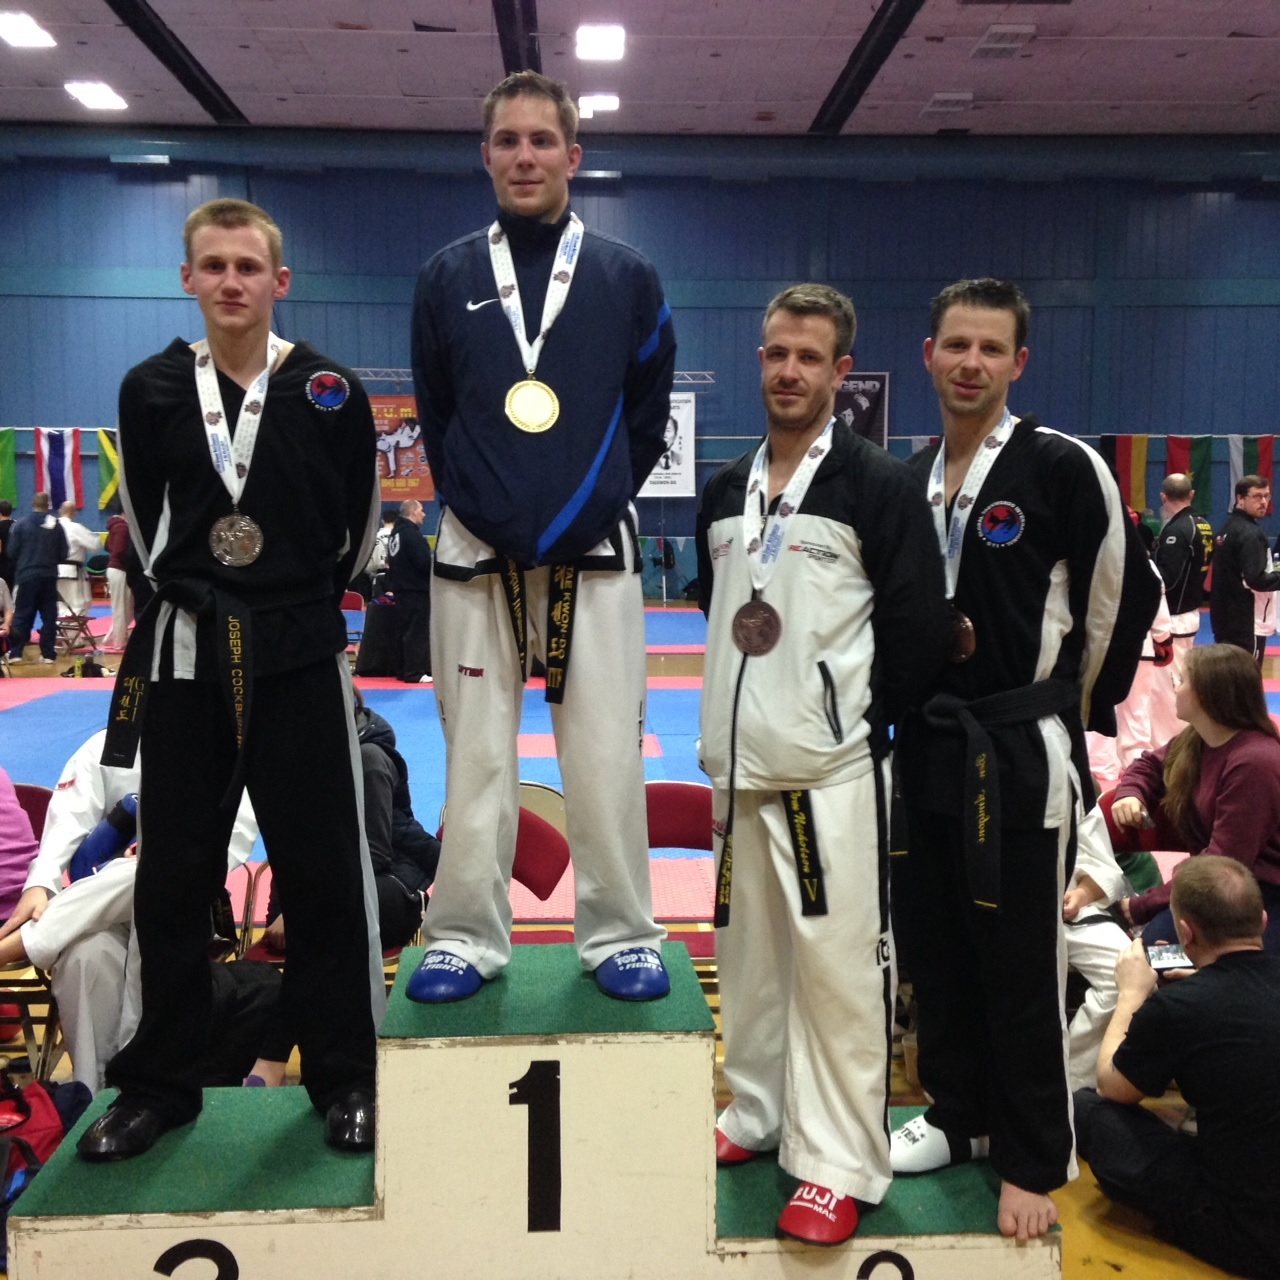 Tae kwon do: From celebrity personal trainer to World Championship bronze medallist